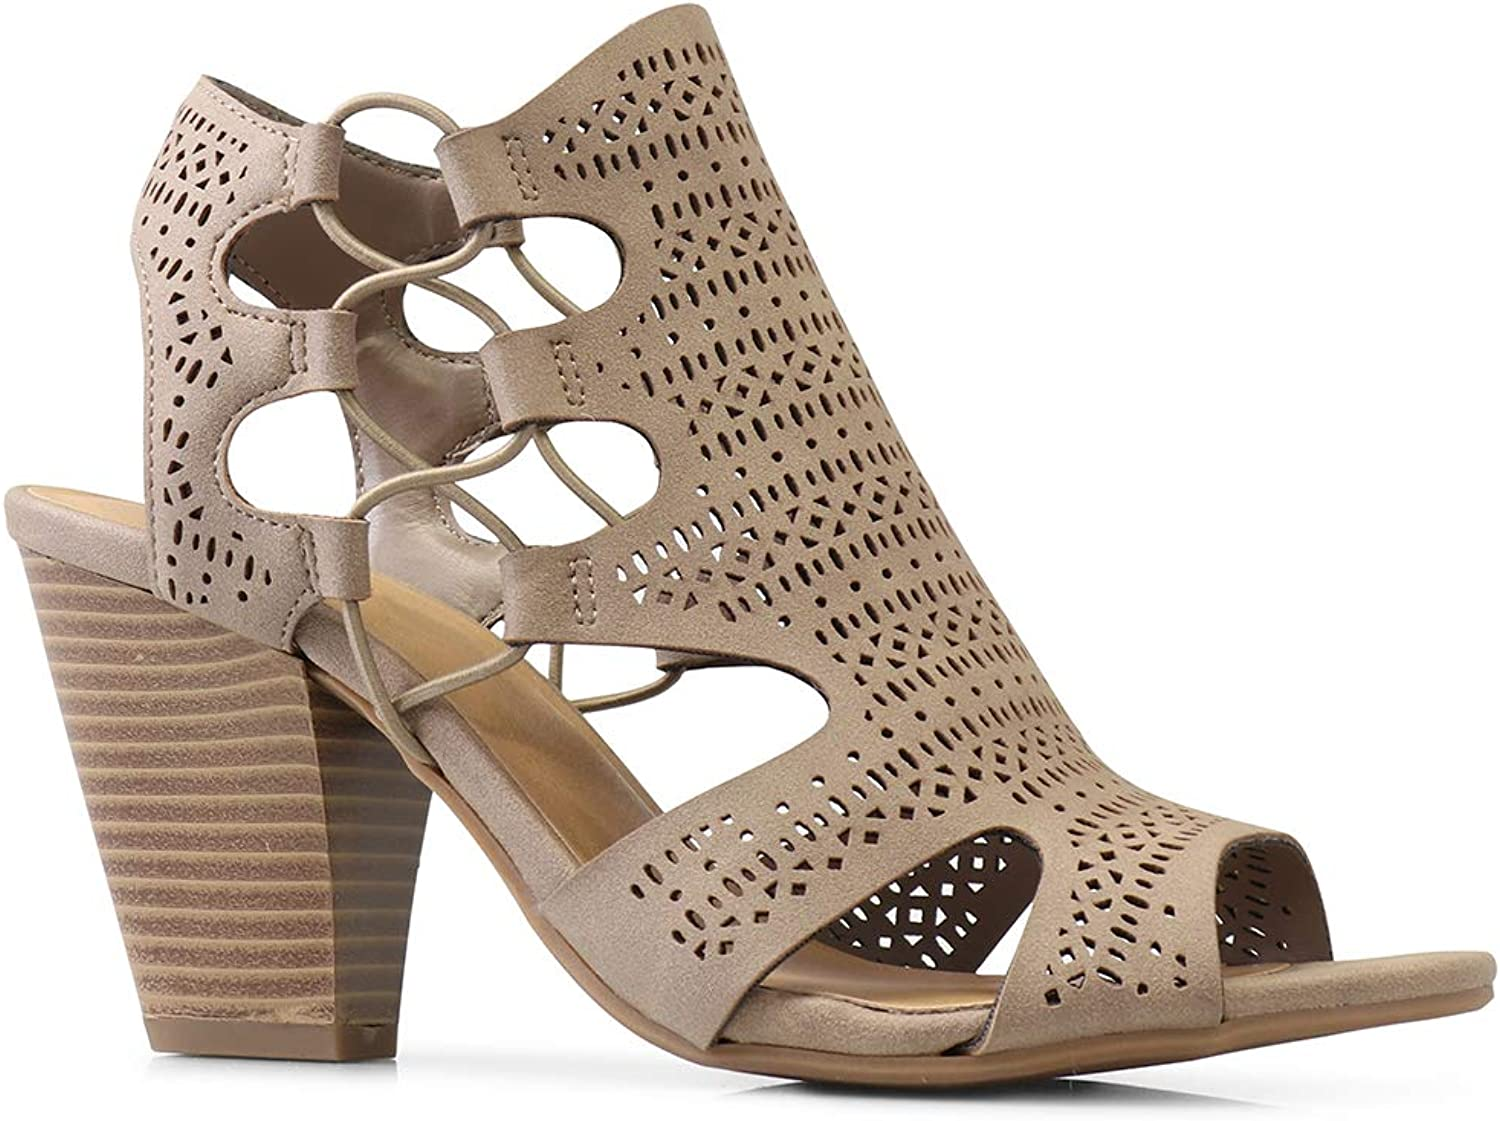 CITYCLASSIFIED City Classified Open Toe Perforated Lace up Elastic Side Stacked Chunky Heel Sandal, Lt. Taupe, 7.5